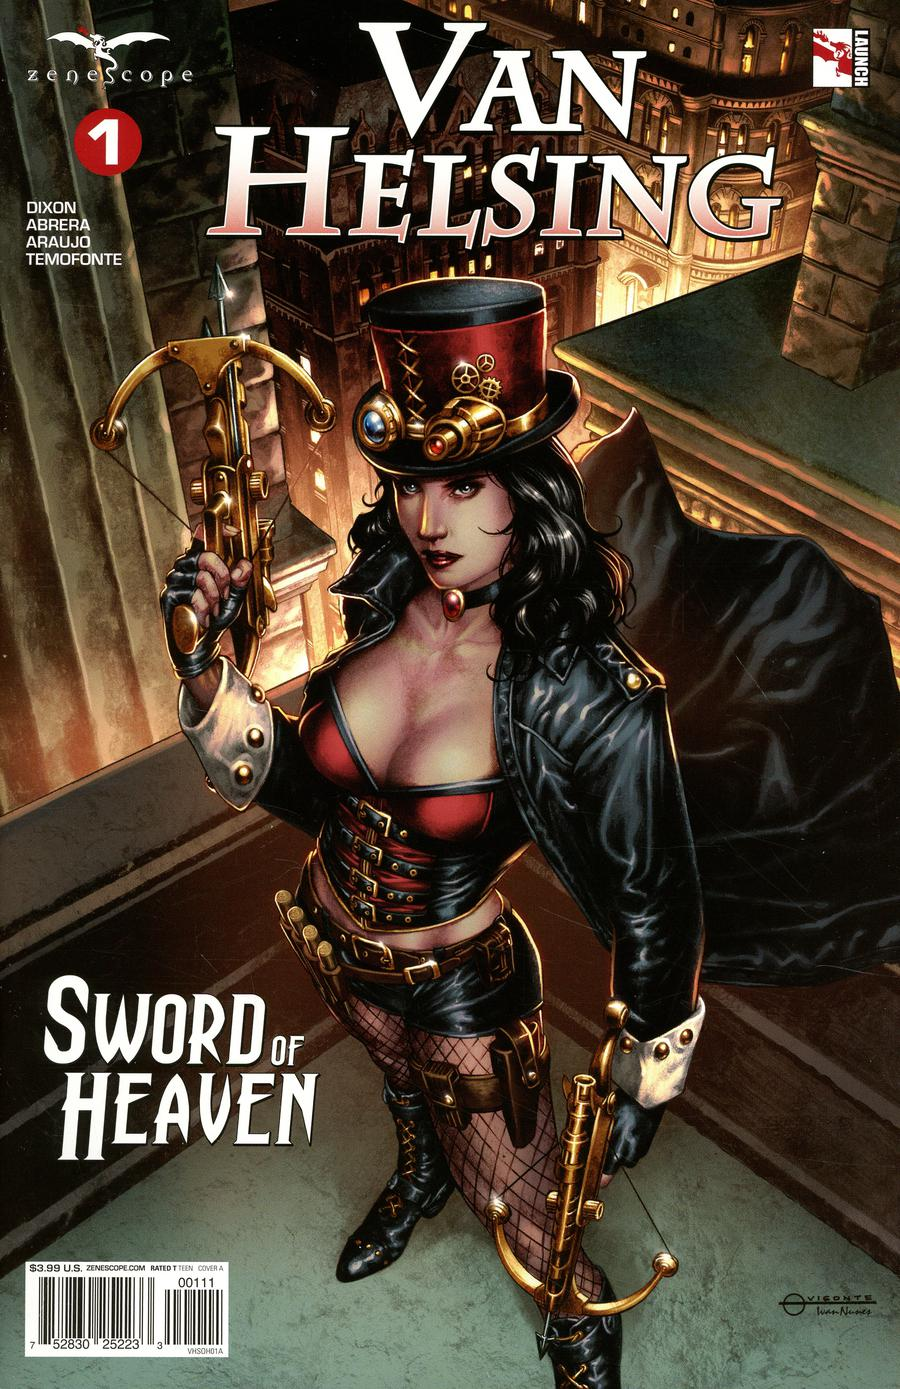 Grimm Fairy Tales Presents Van Helsing Sword Of Heaven #1 Cover A Geebo Vigonte